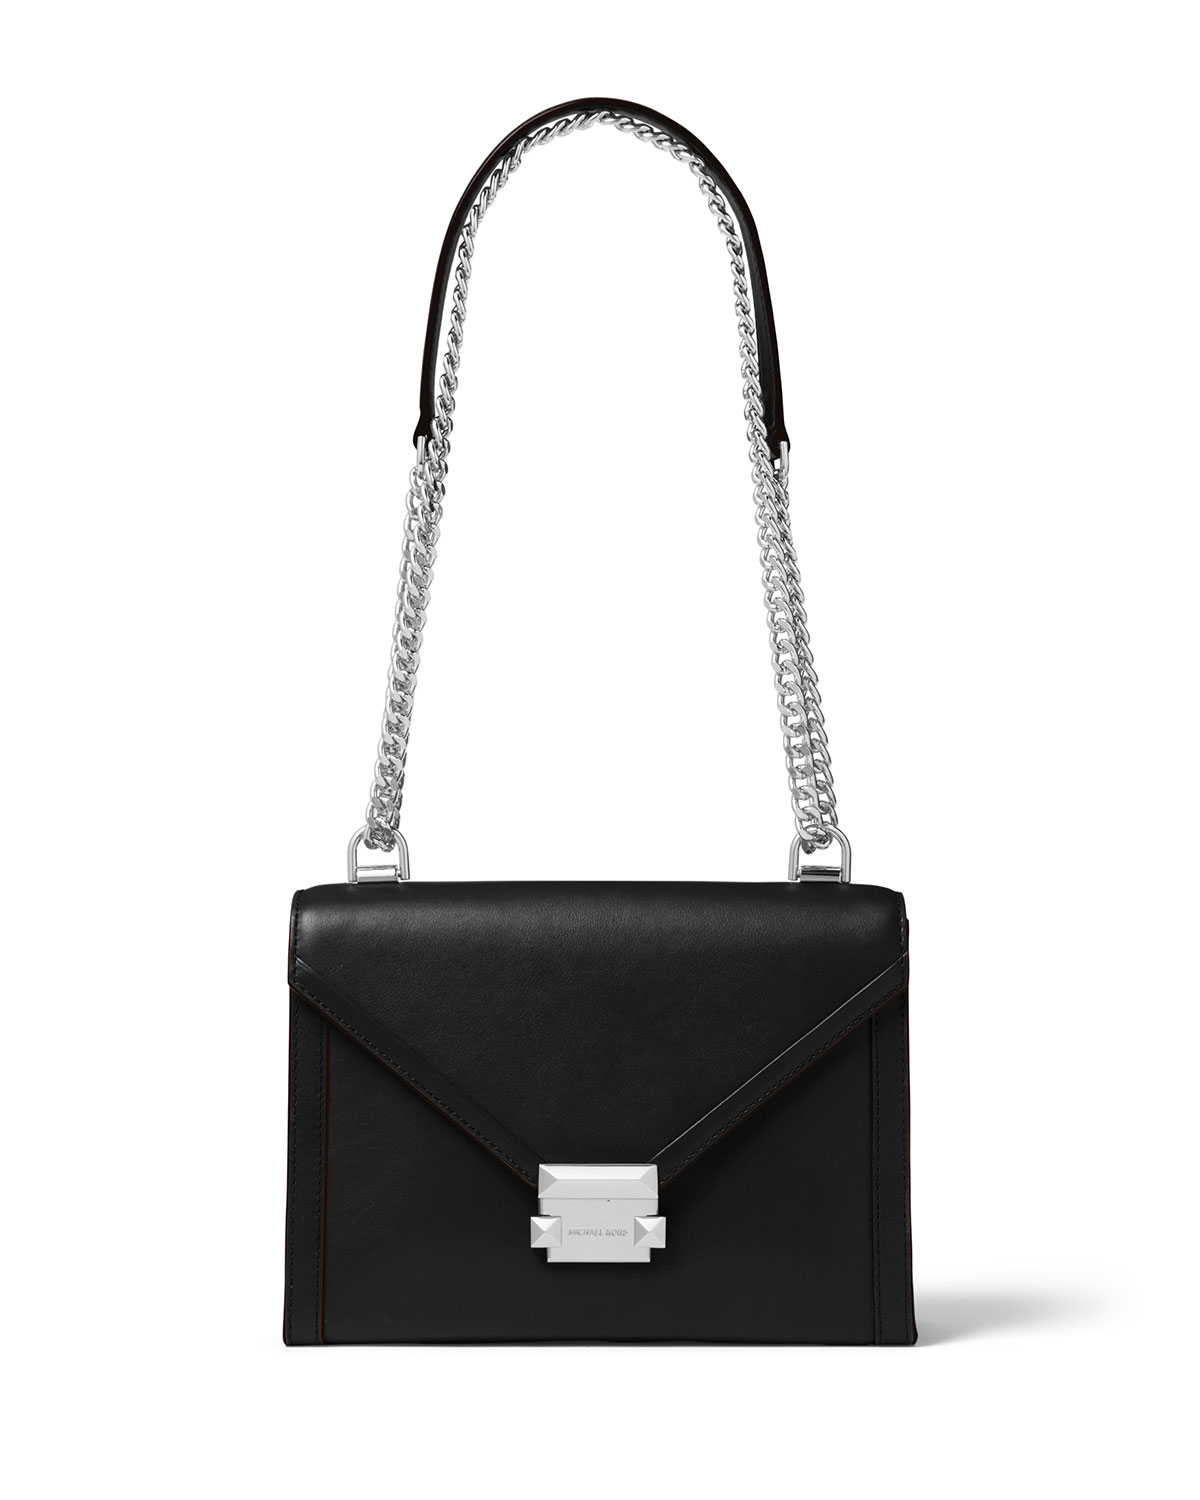 Mercer Large Shoulder Bag